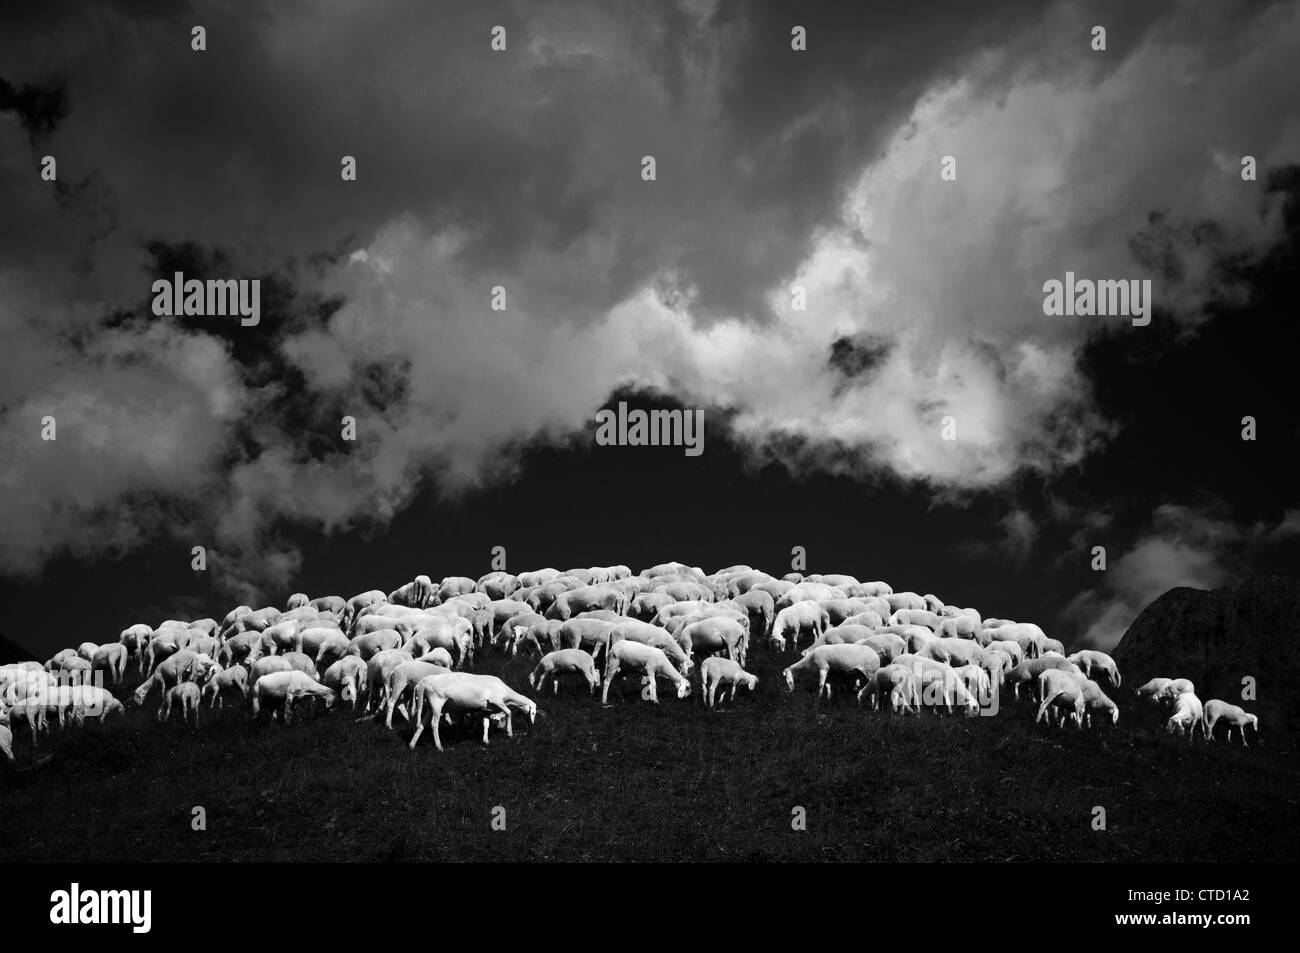 Troupeau de moutons sur la colline Photo Stock